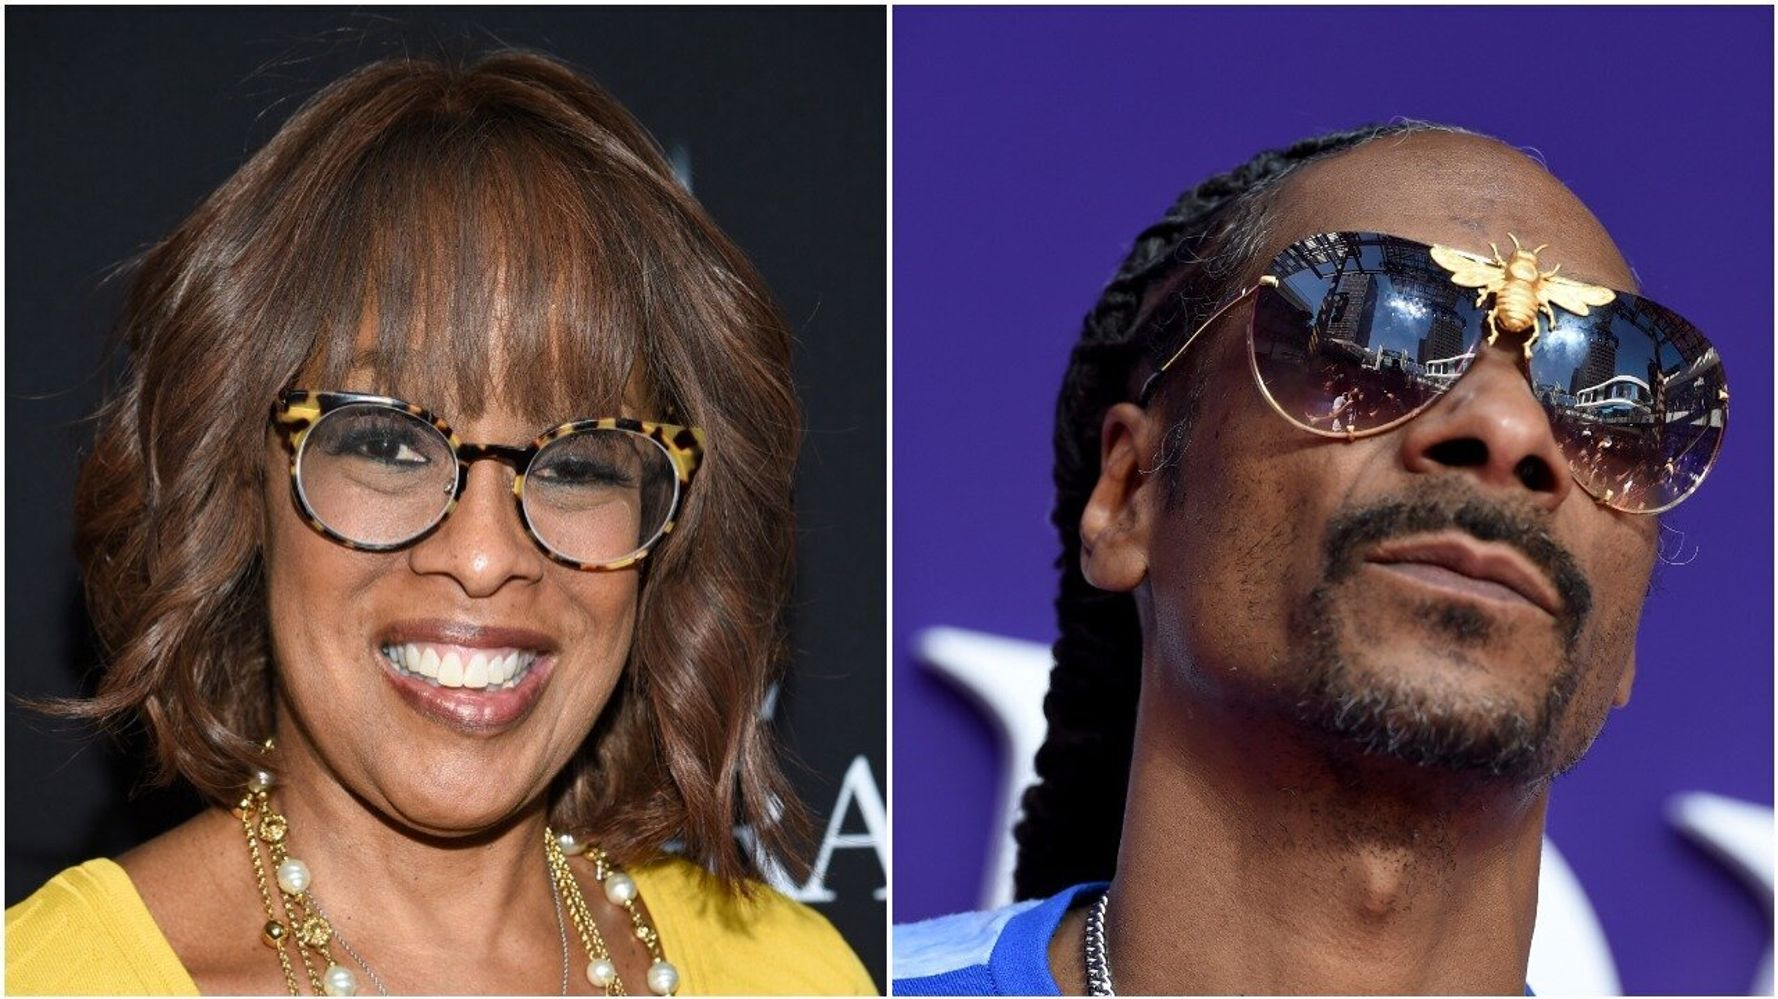 Westlake Legal Group 5e44993a21000061002692b1 Snoop Dogg Apologizes To Gayle King For 'Derogatory' Attack Over Kobe Bryant